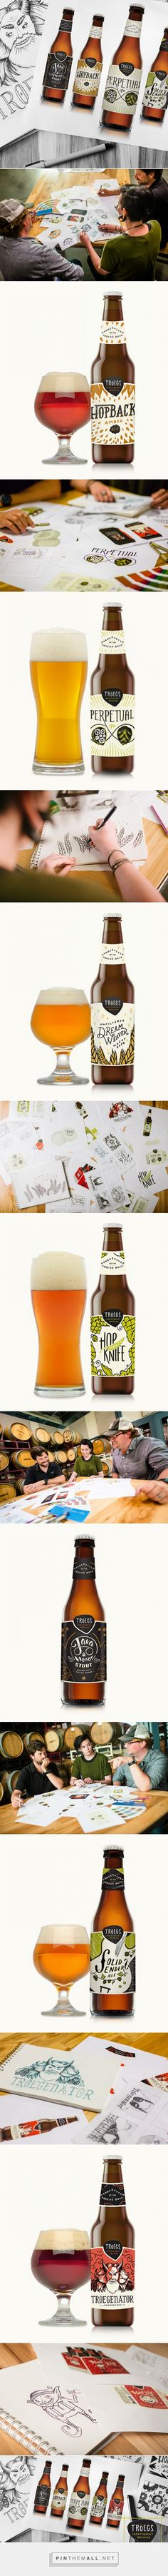 Tröegs Redesign | Oh Beautiful Beer... - a grouped images picture - Pin Them All